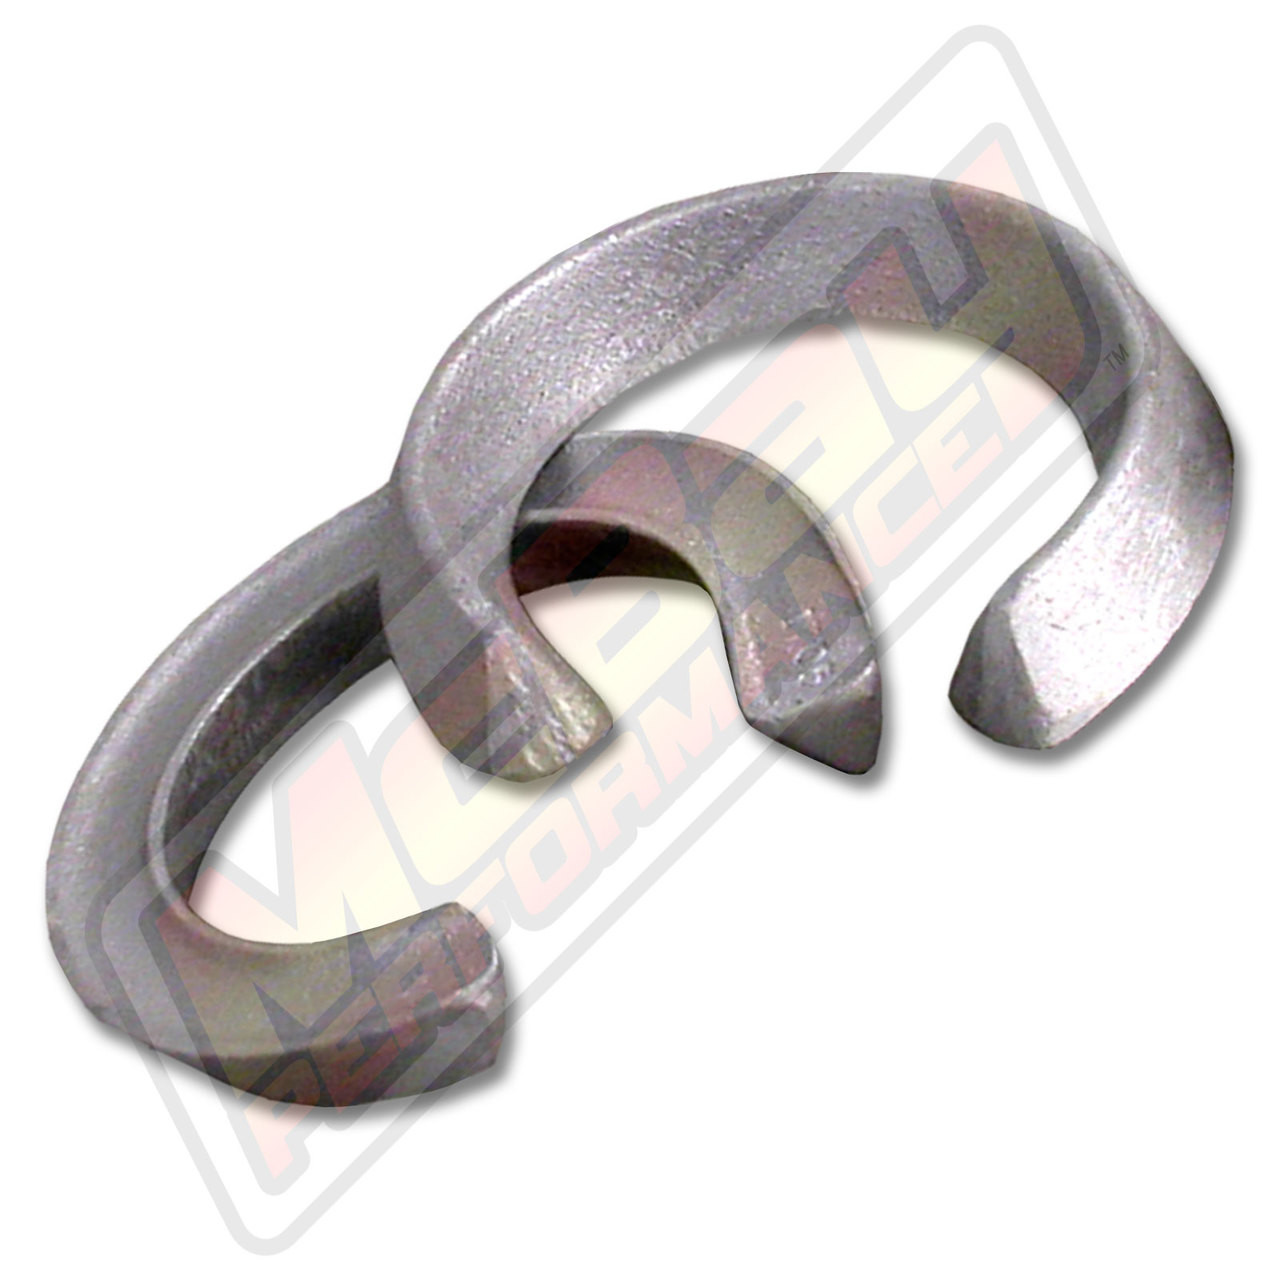 """Part Number 1705 - 1-7/8"""" to 2-1/4""""  Lift Front Coil Spring Spacer Set"""